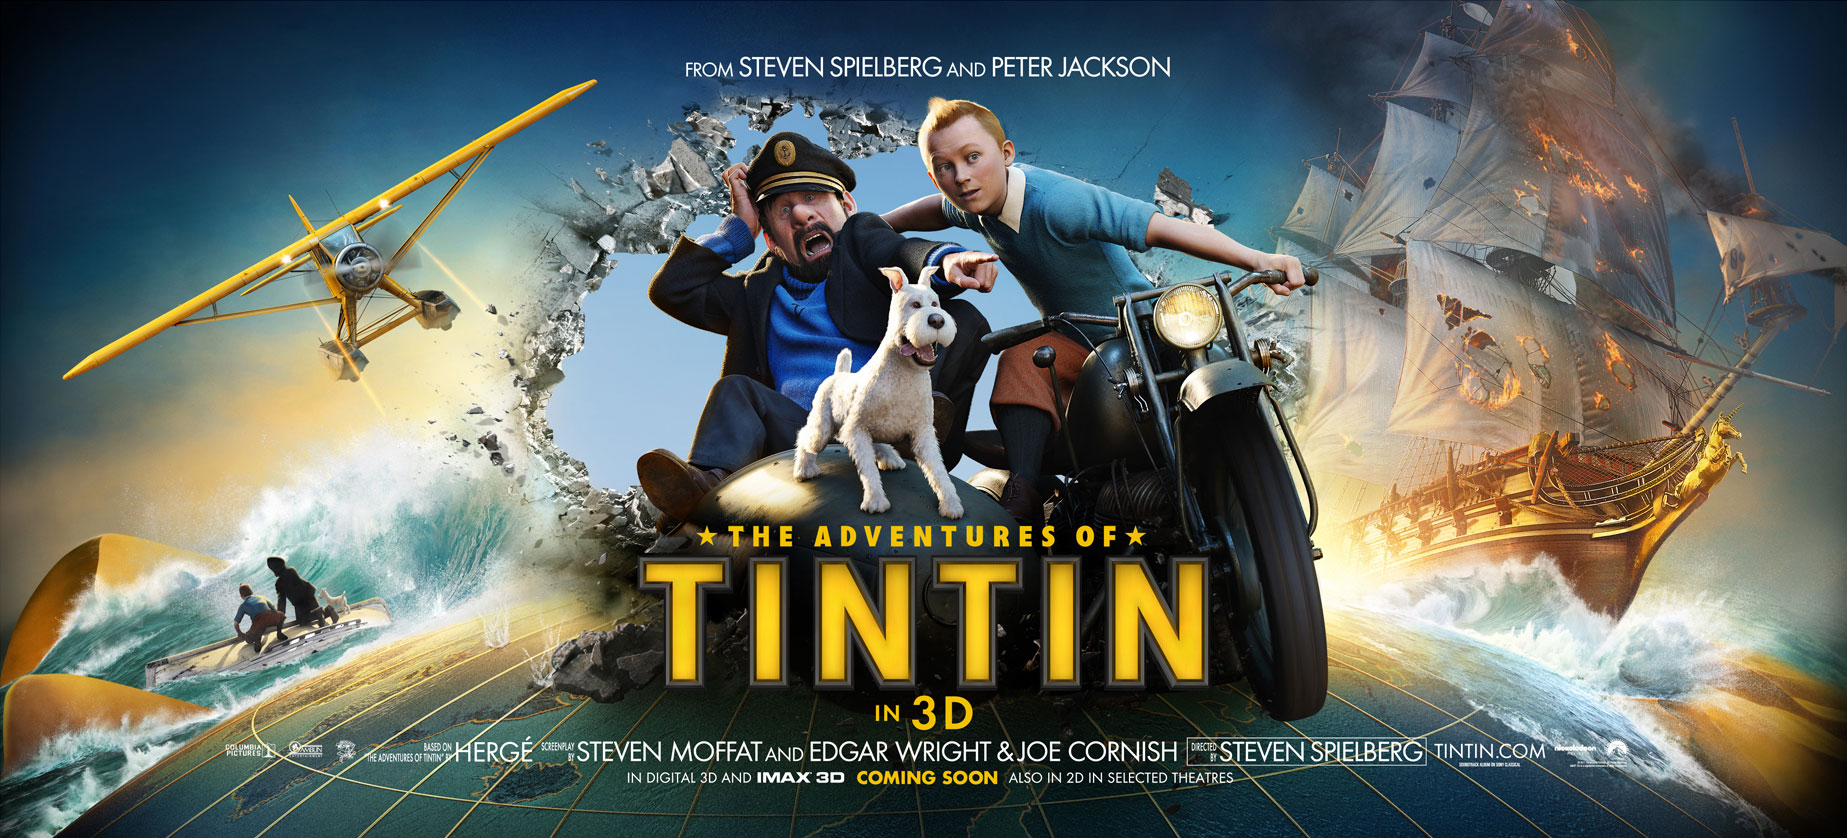 New Standee Art for The Adventures of Tintin